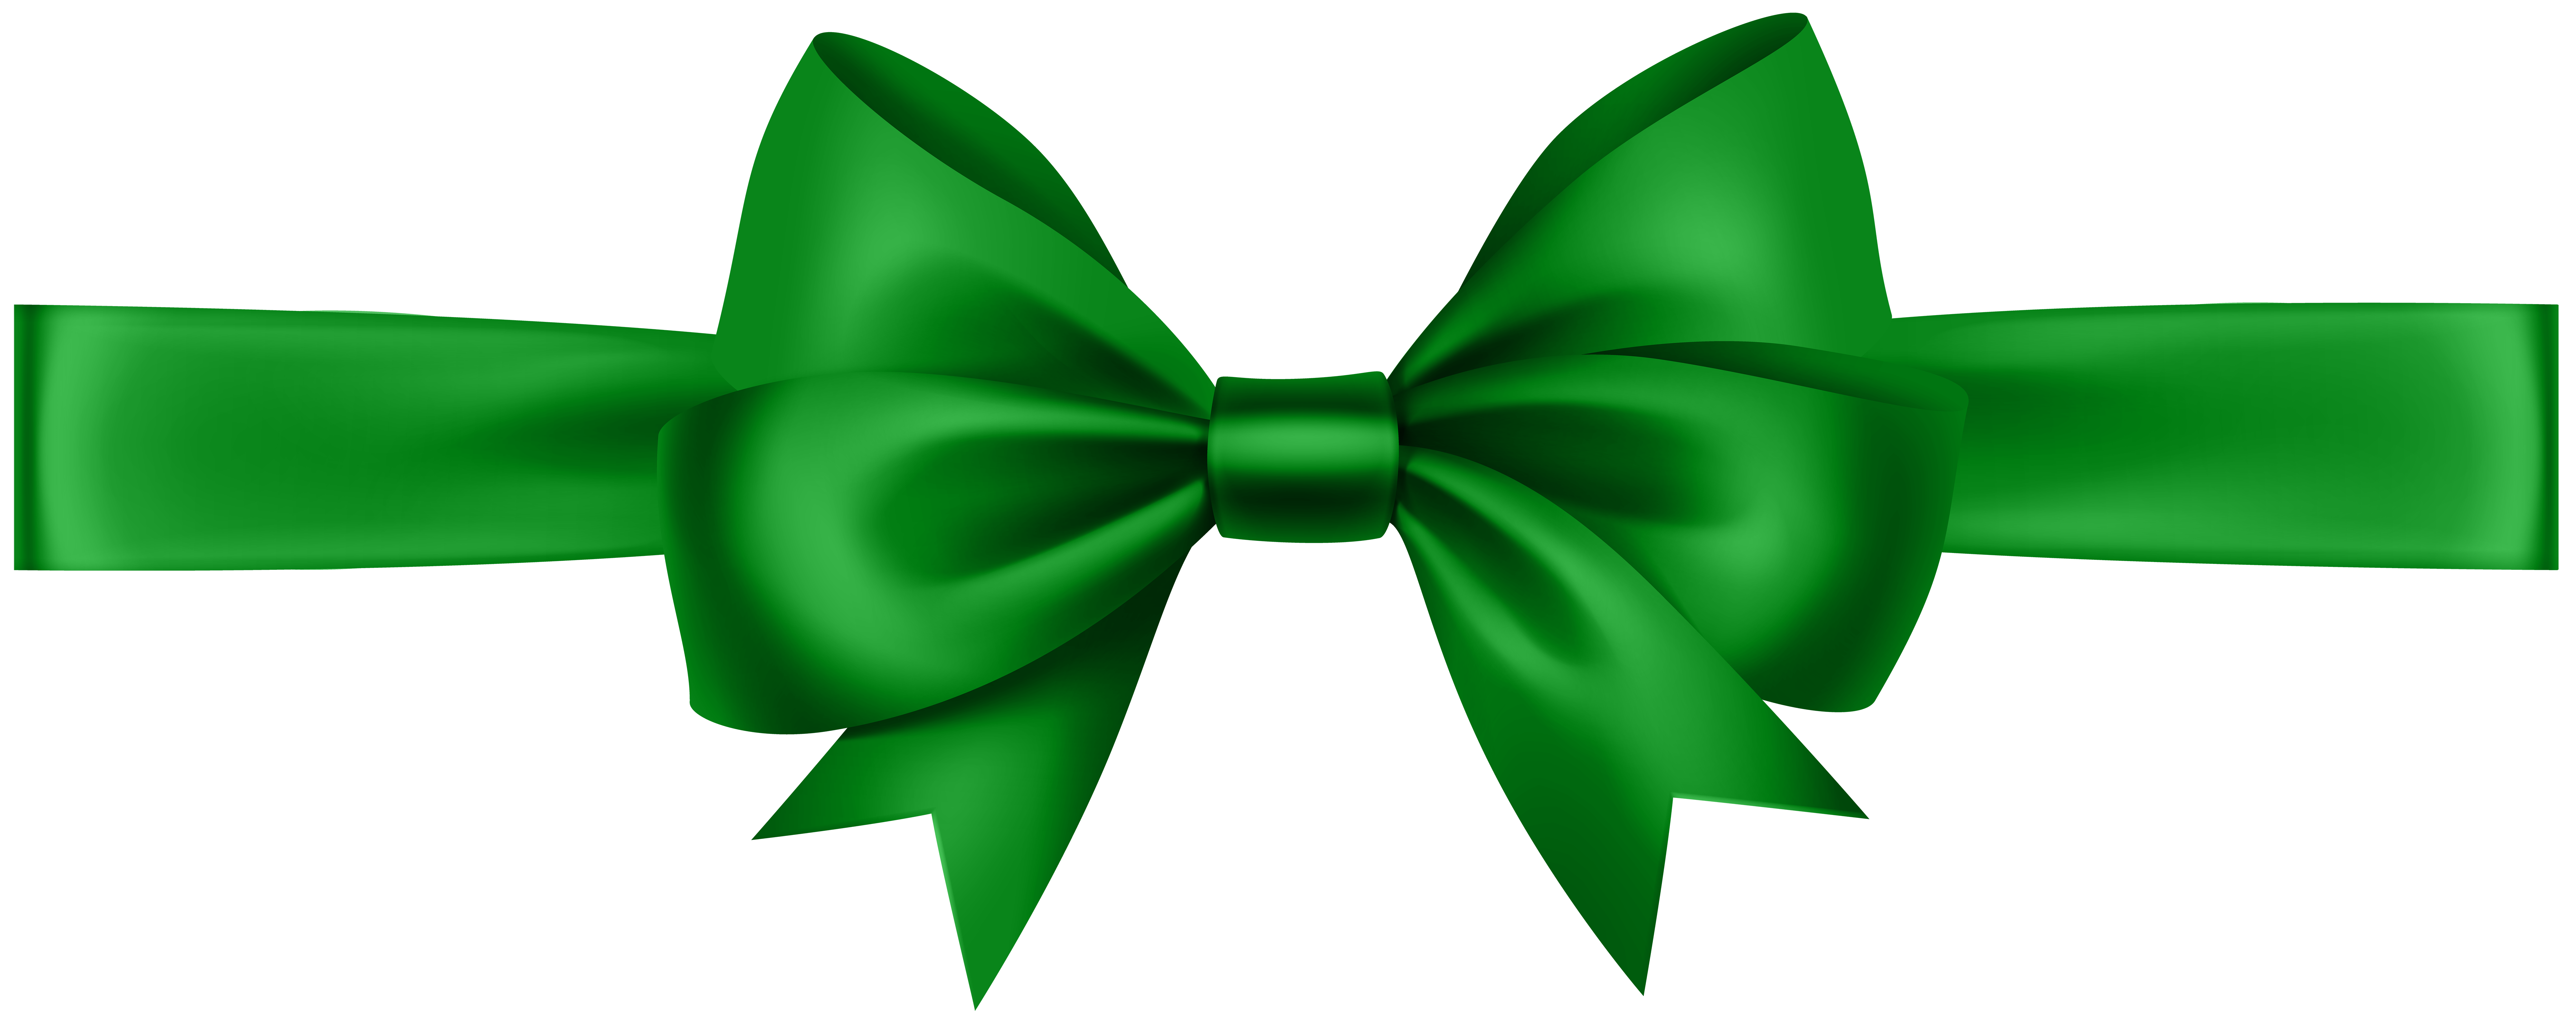 Ribbon With Bow Green Transparent Png Clip Art Image Gallery Yopriceville High Quality Images And Transparent Png Free C Free Clip Art Art Images Clip Art